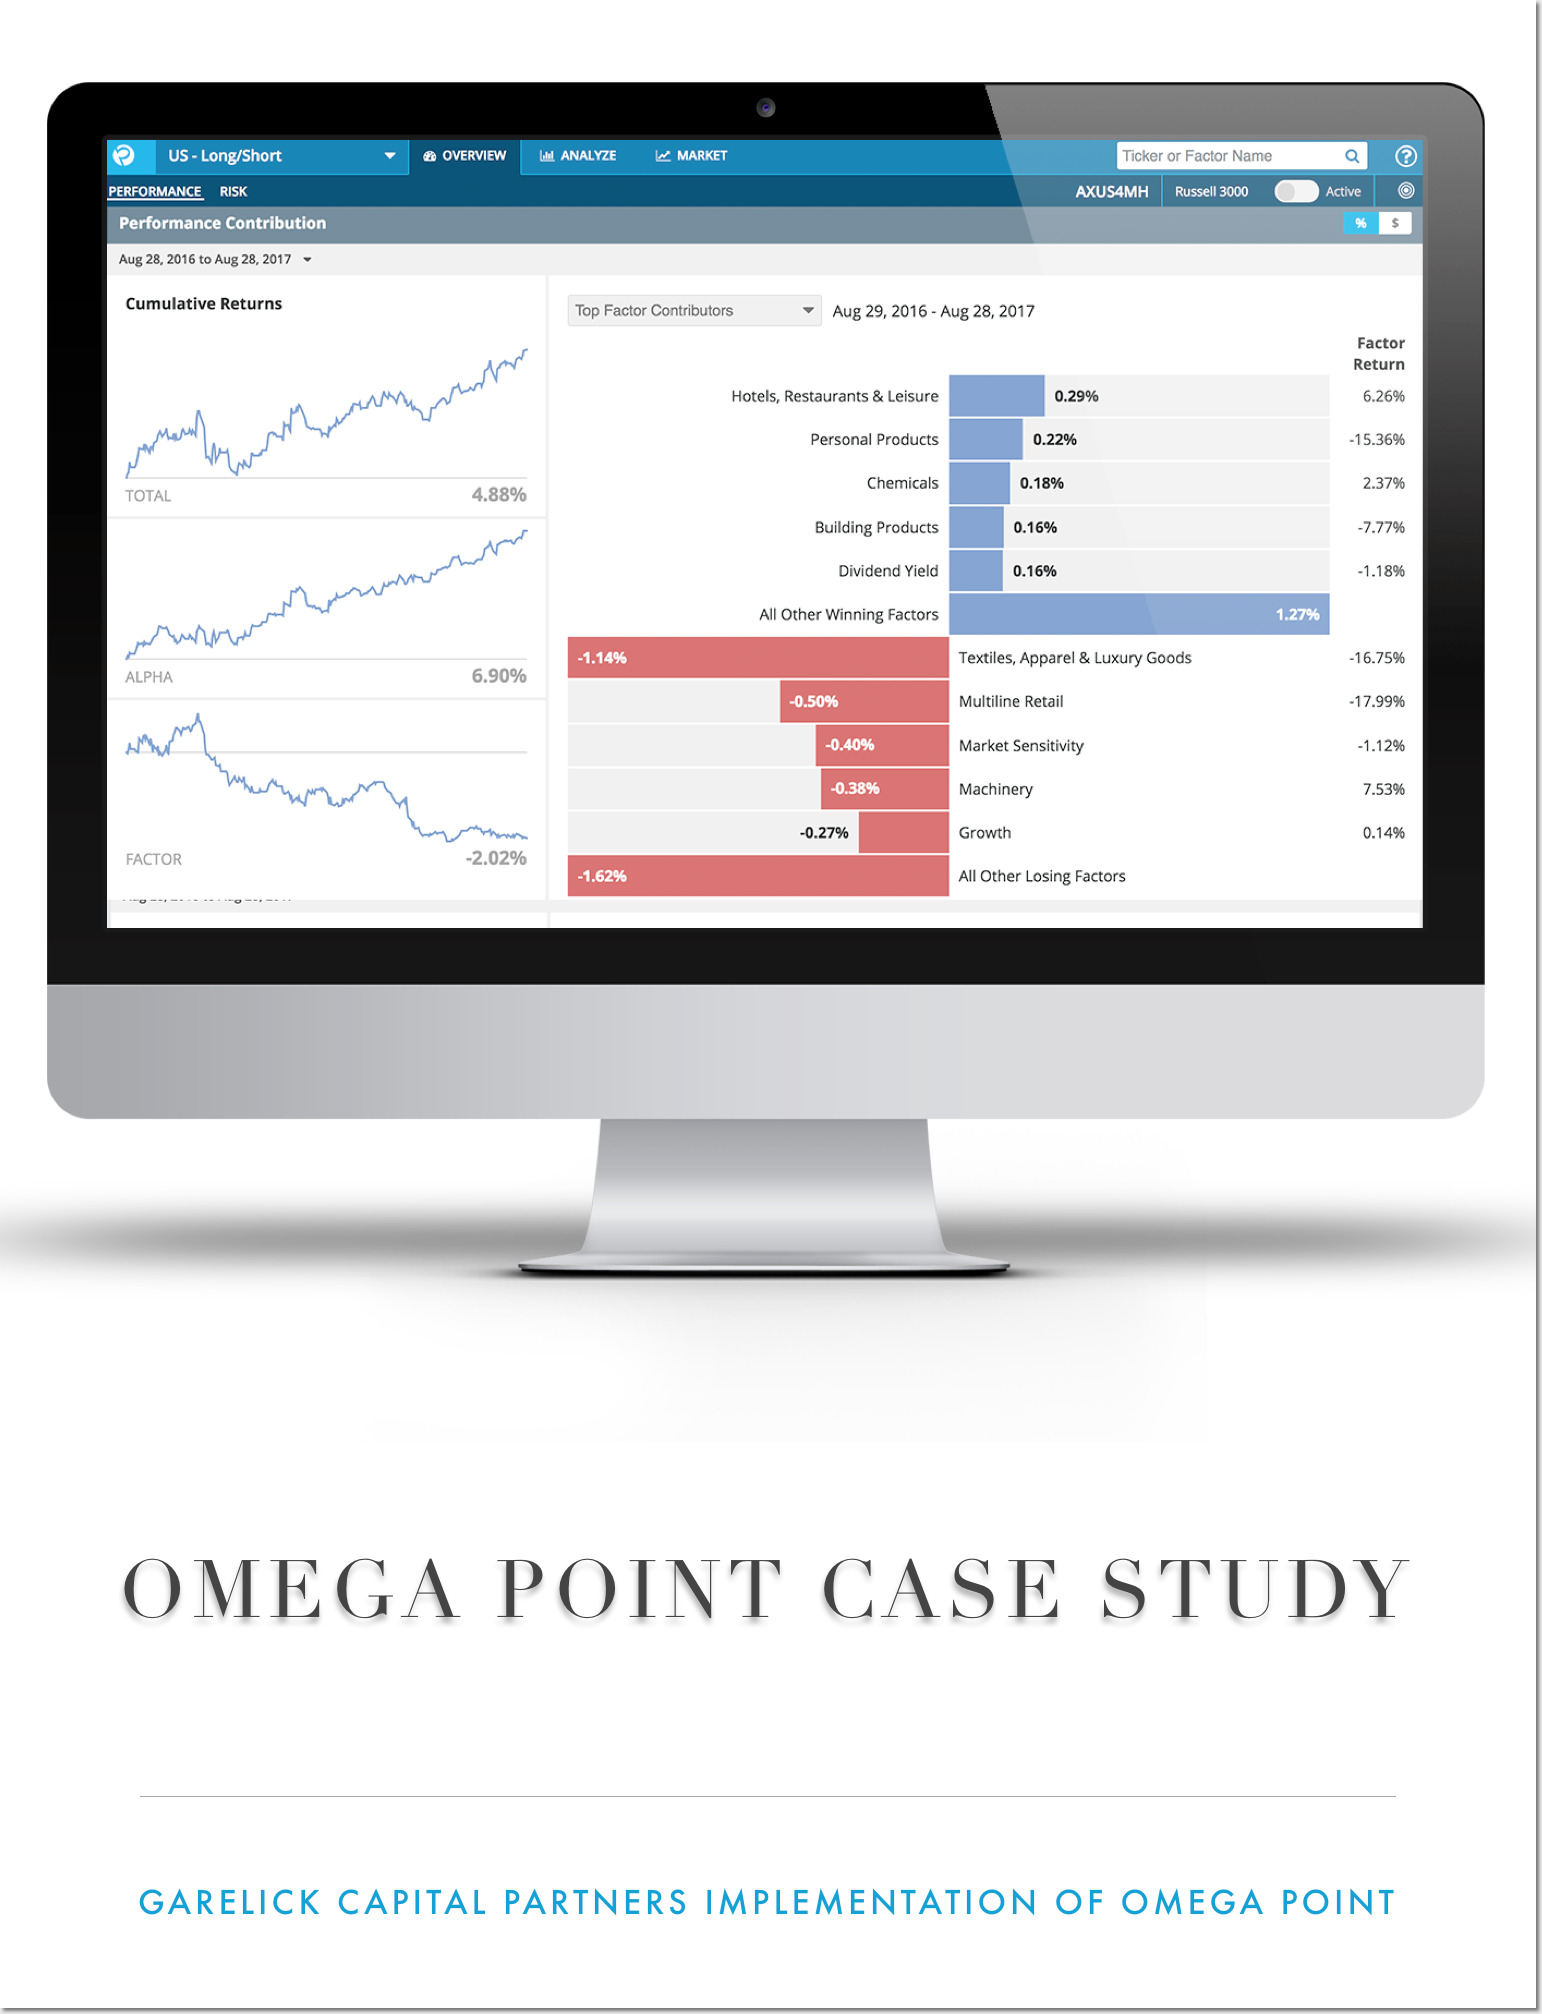 Omega Point Case Study cover page